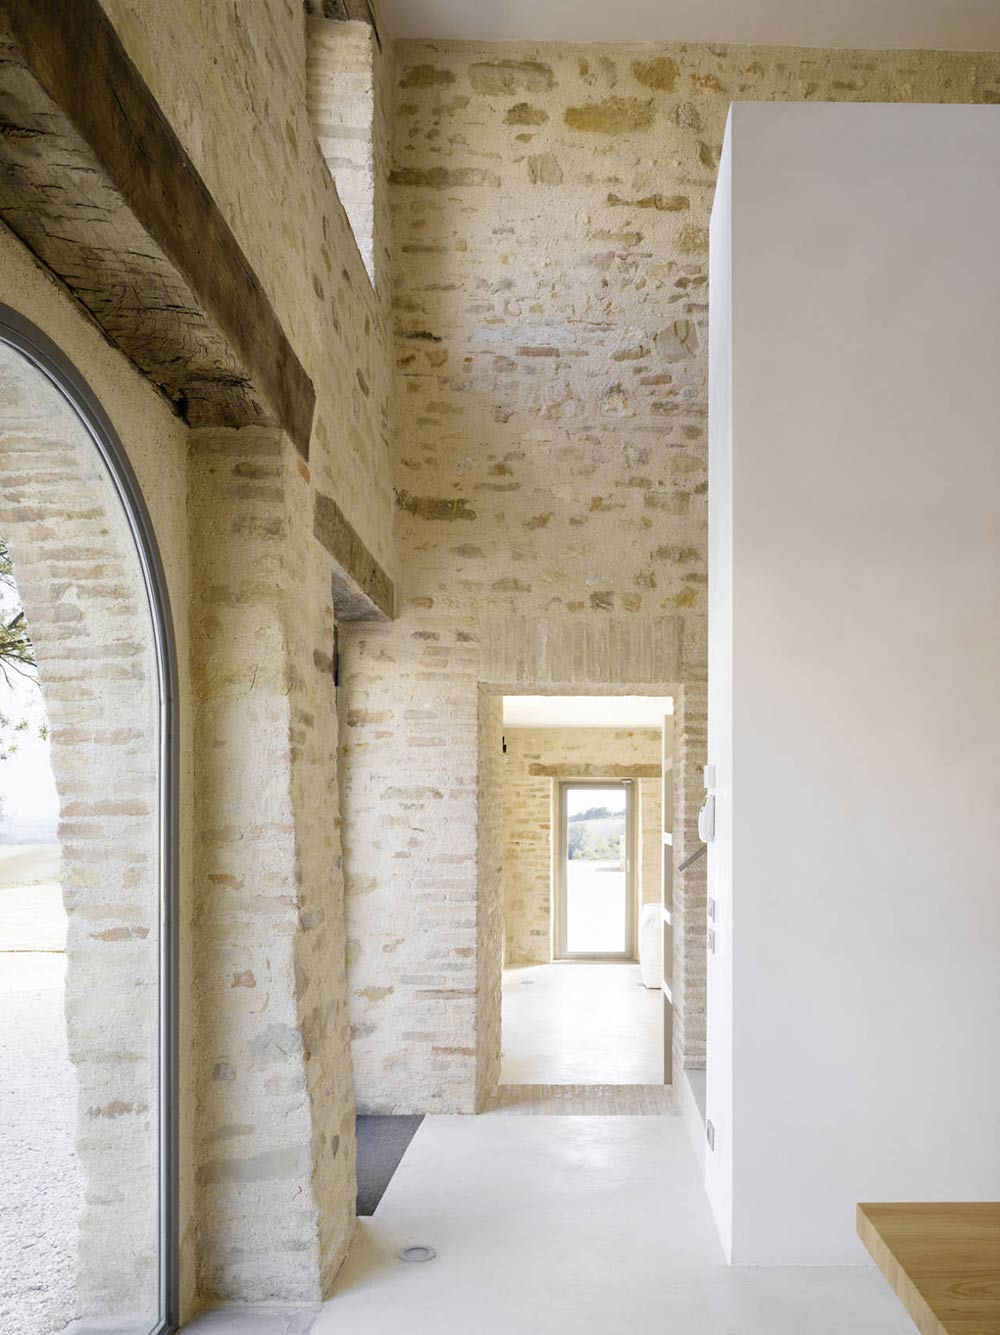 Hallway, Traditional Stone, Home Renovation In Treia, Italy by Wespi de Meuron